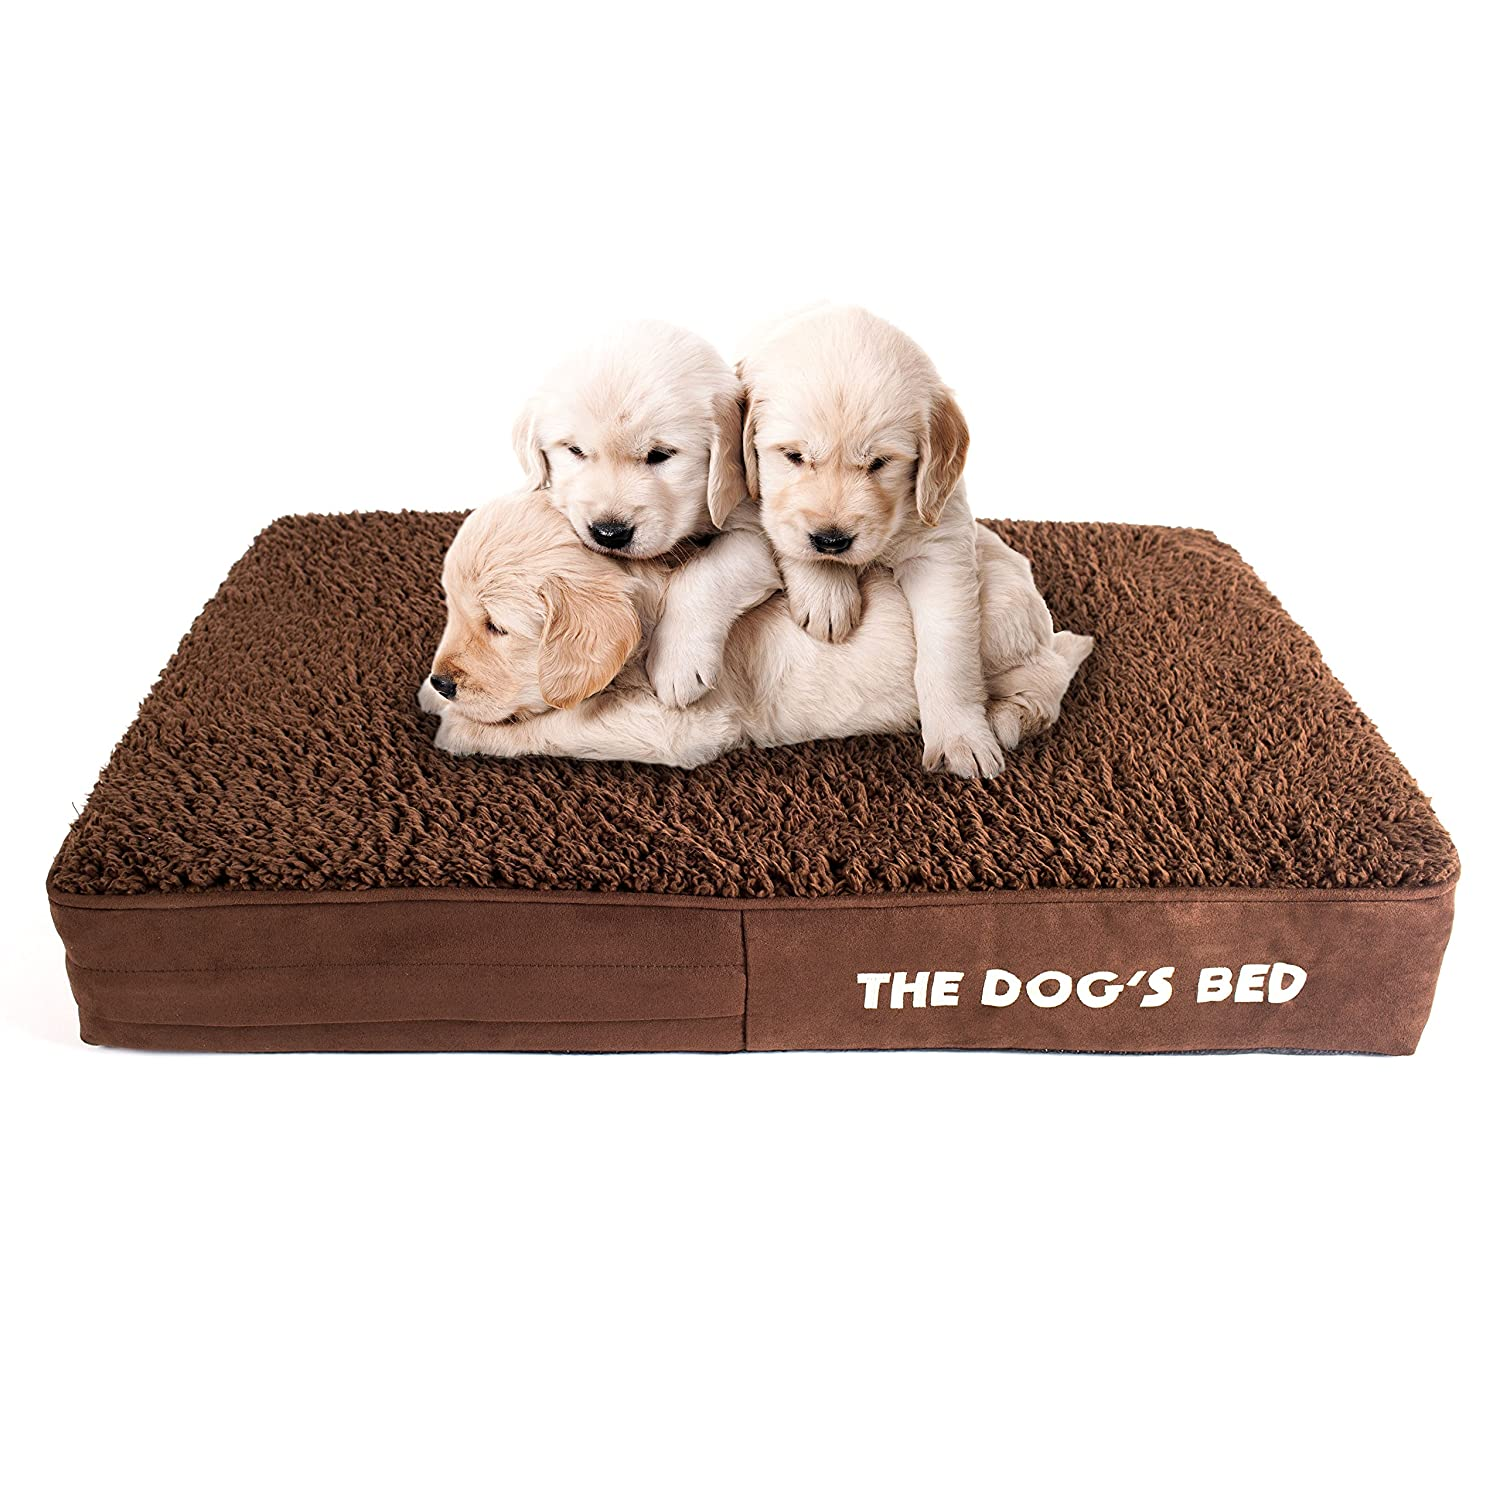 Brown Plush Small Bed (71x48x10cm)The Dog's Bed, Premium Orthopedic Waterproof Memory Foam Dog Beds, 5 Sizes 7 Colours  Eases Pet Arthritis, Hip Dysplasia & Post Op Pain, Quality Therapeutic Supportive Bed, Washable Oxford Cover